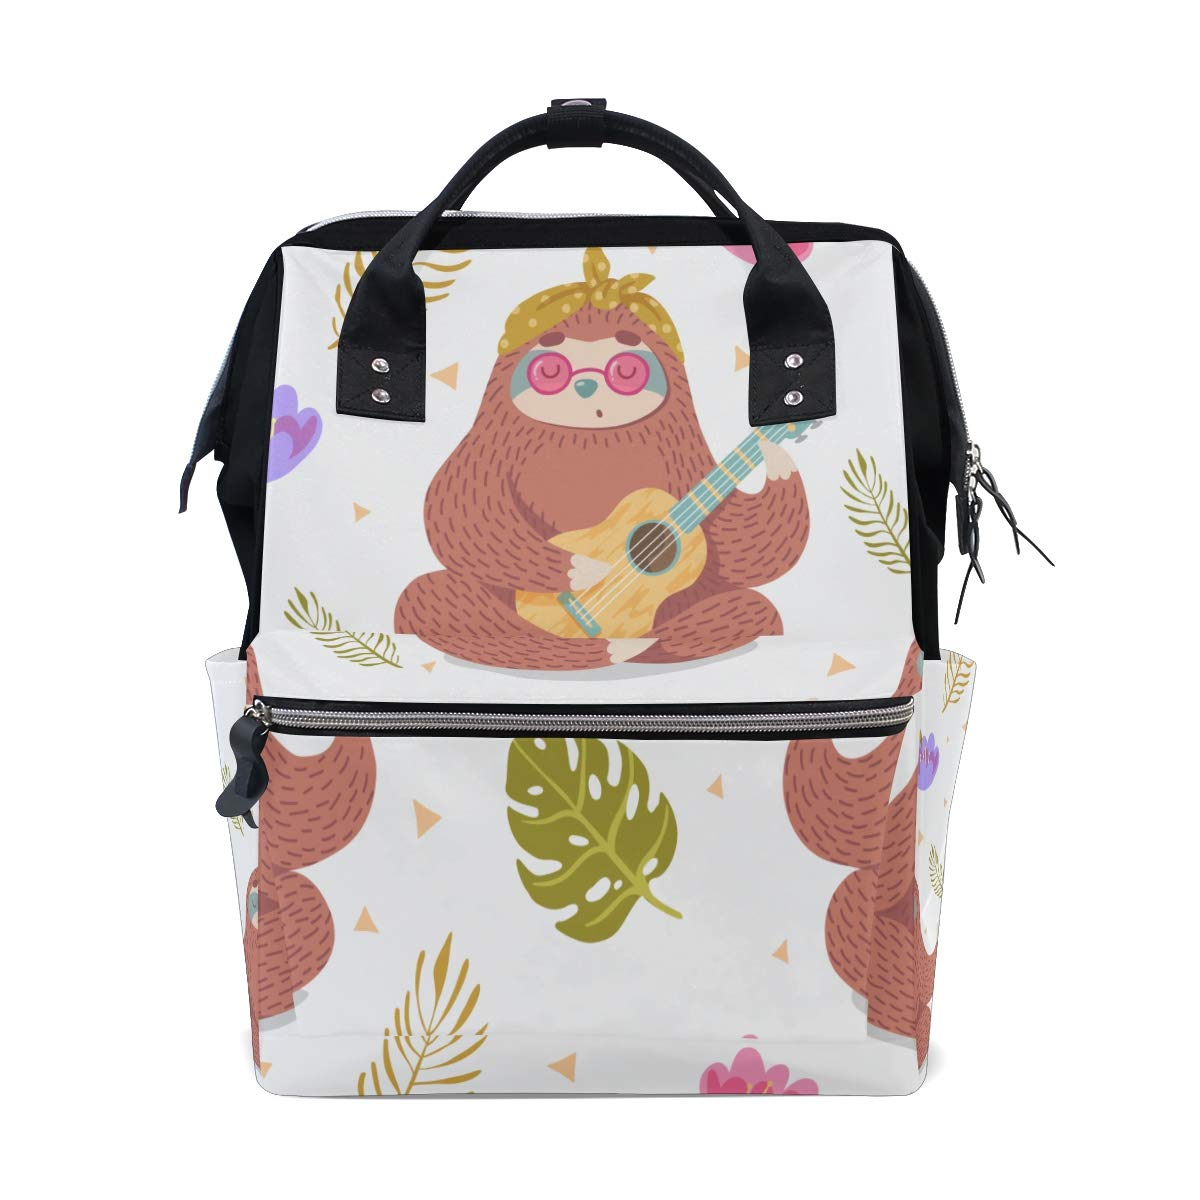 a2cf45f0dde Amazon.com : Lazy Sleeping Sloth Animal Large Capacity Diaper Bags ...